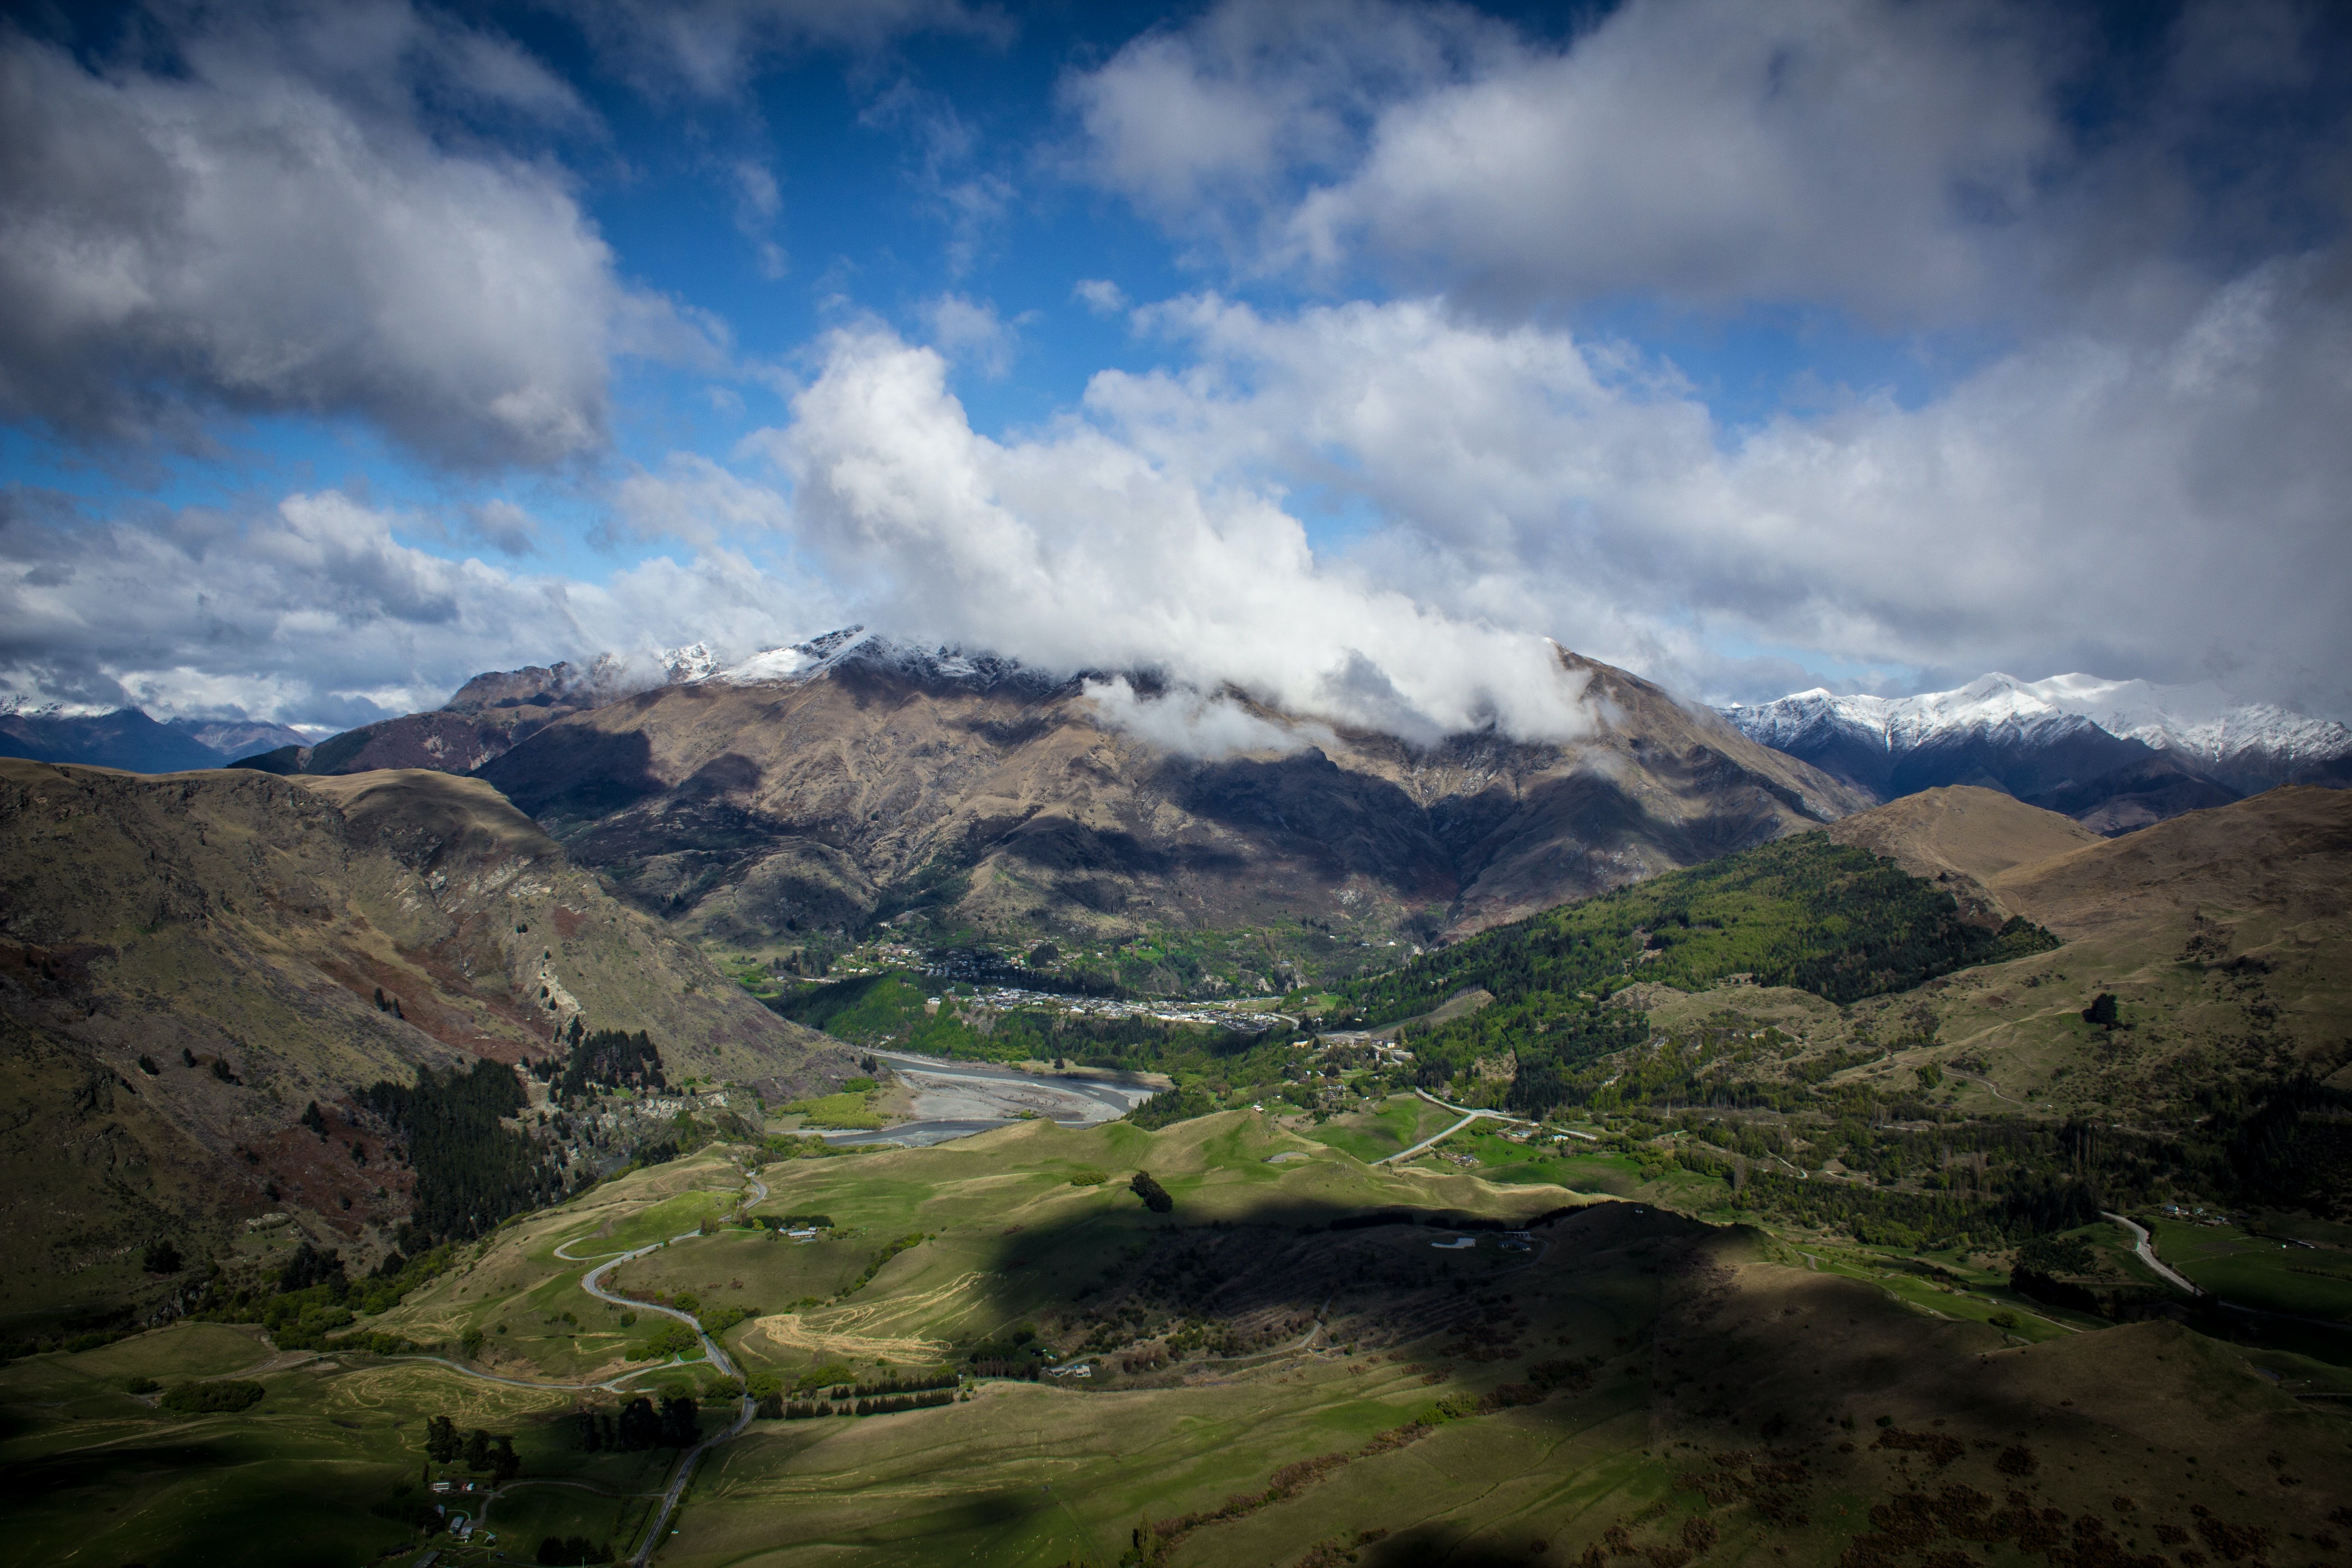 A breathtaking landscape with green plains stretching at the foot of cloud-shrouded mountains